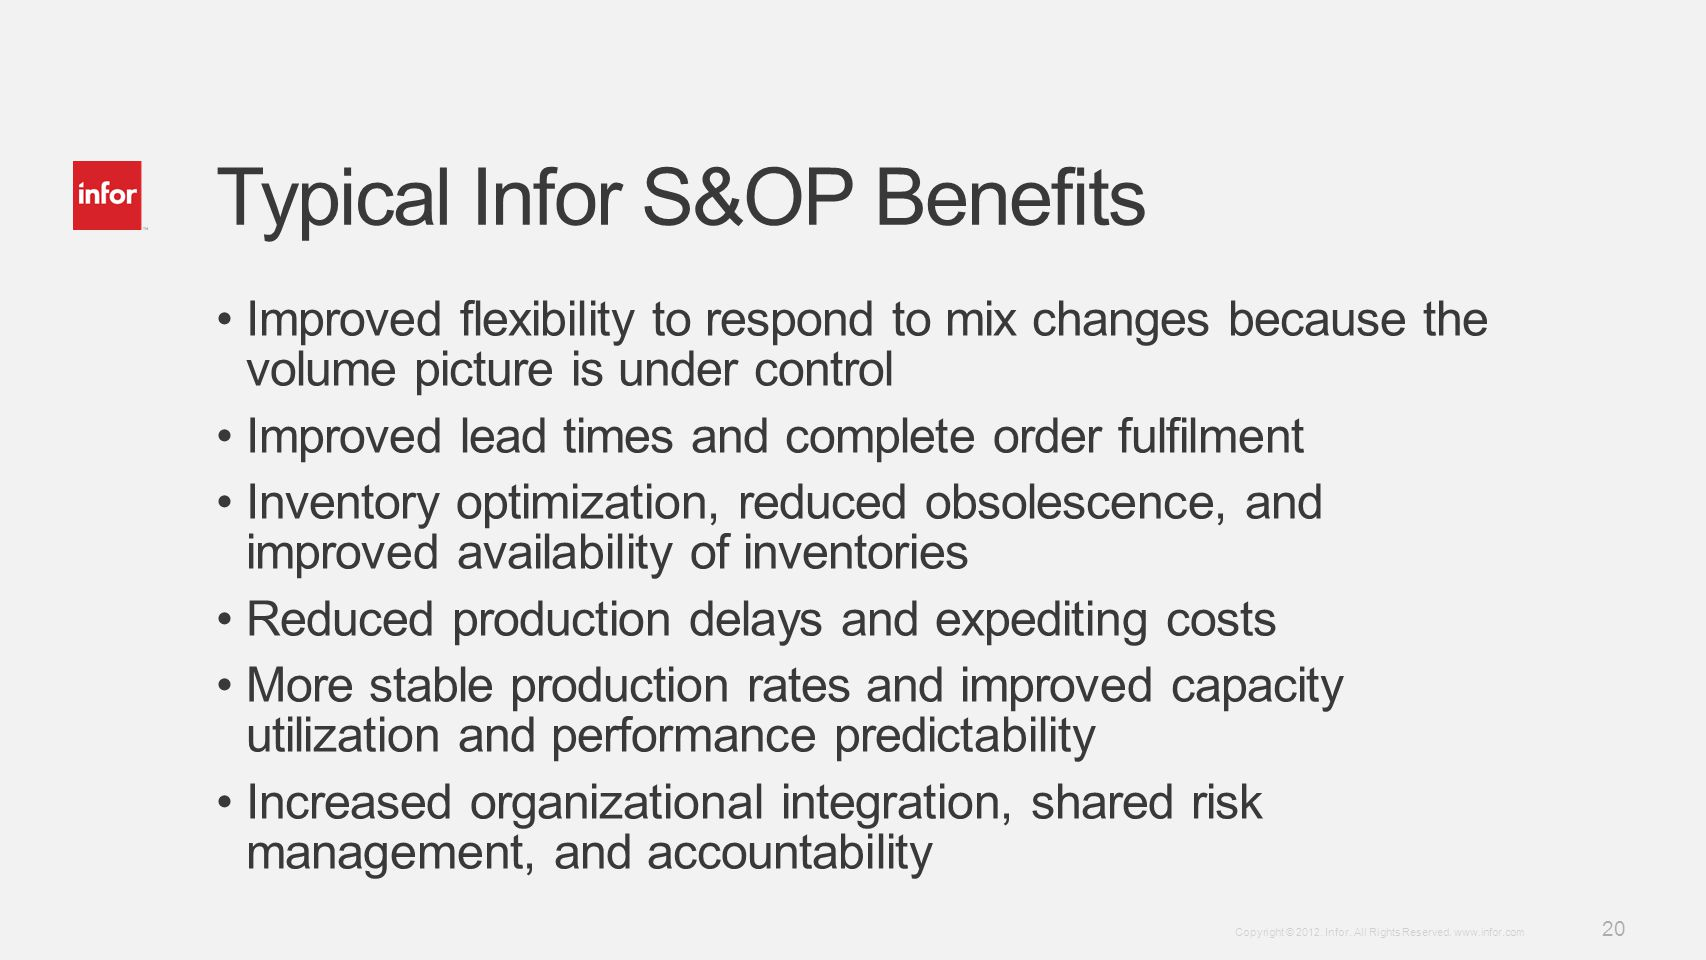 Typical Infor S&OP Benefits